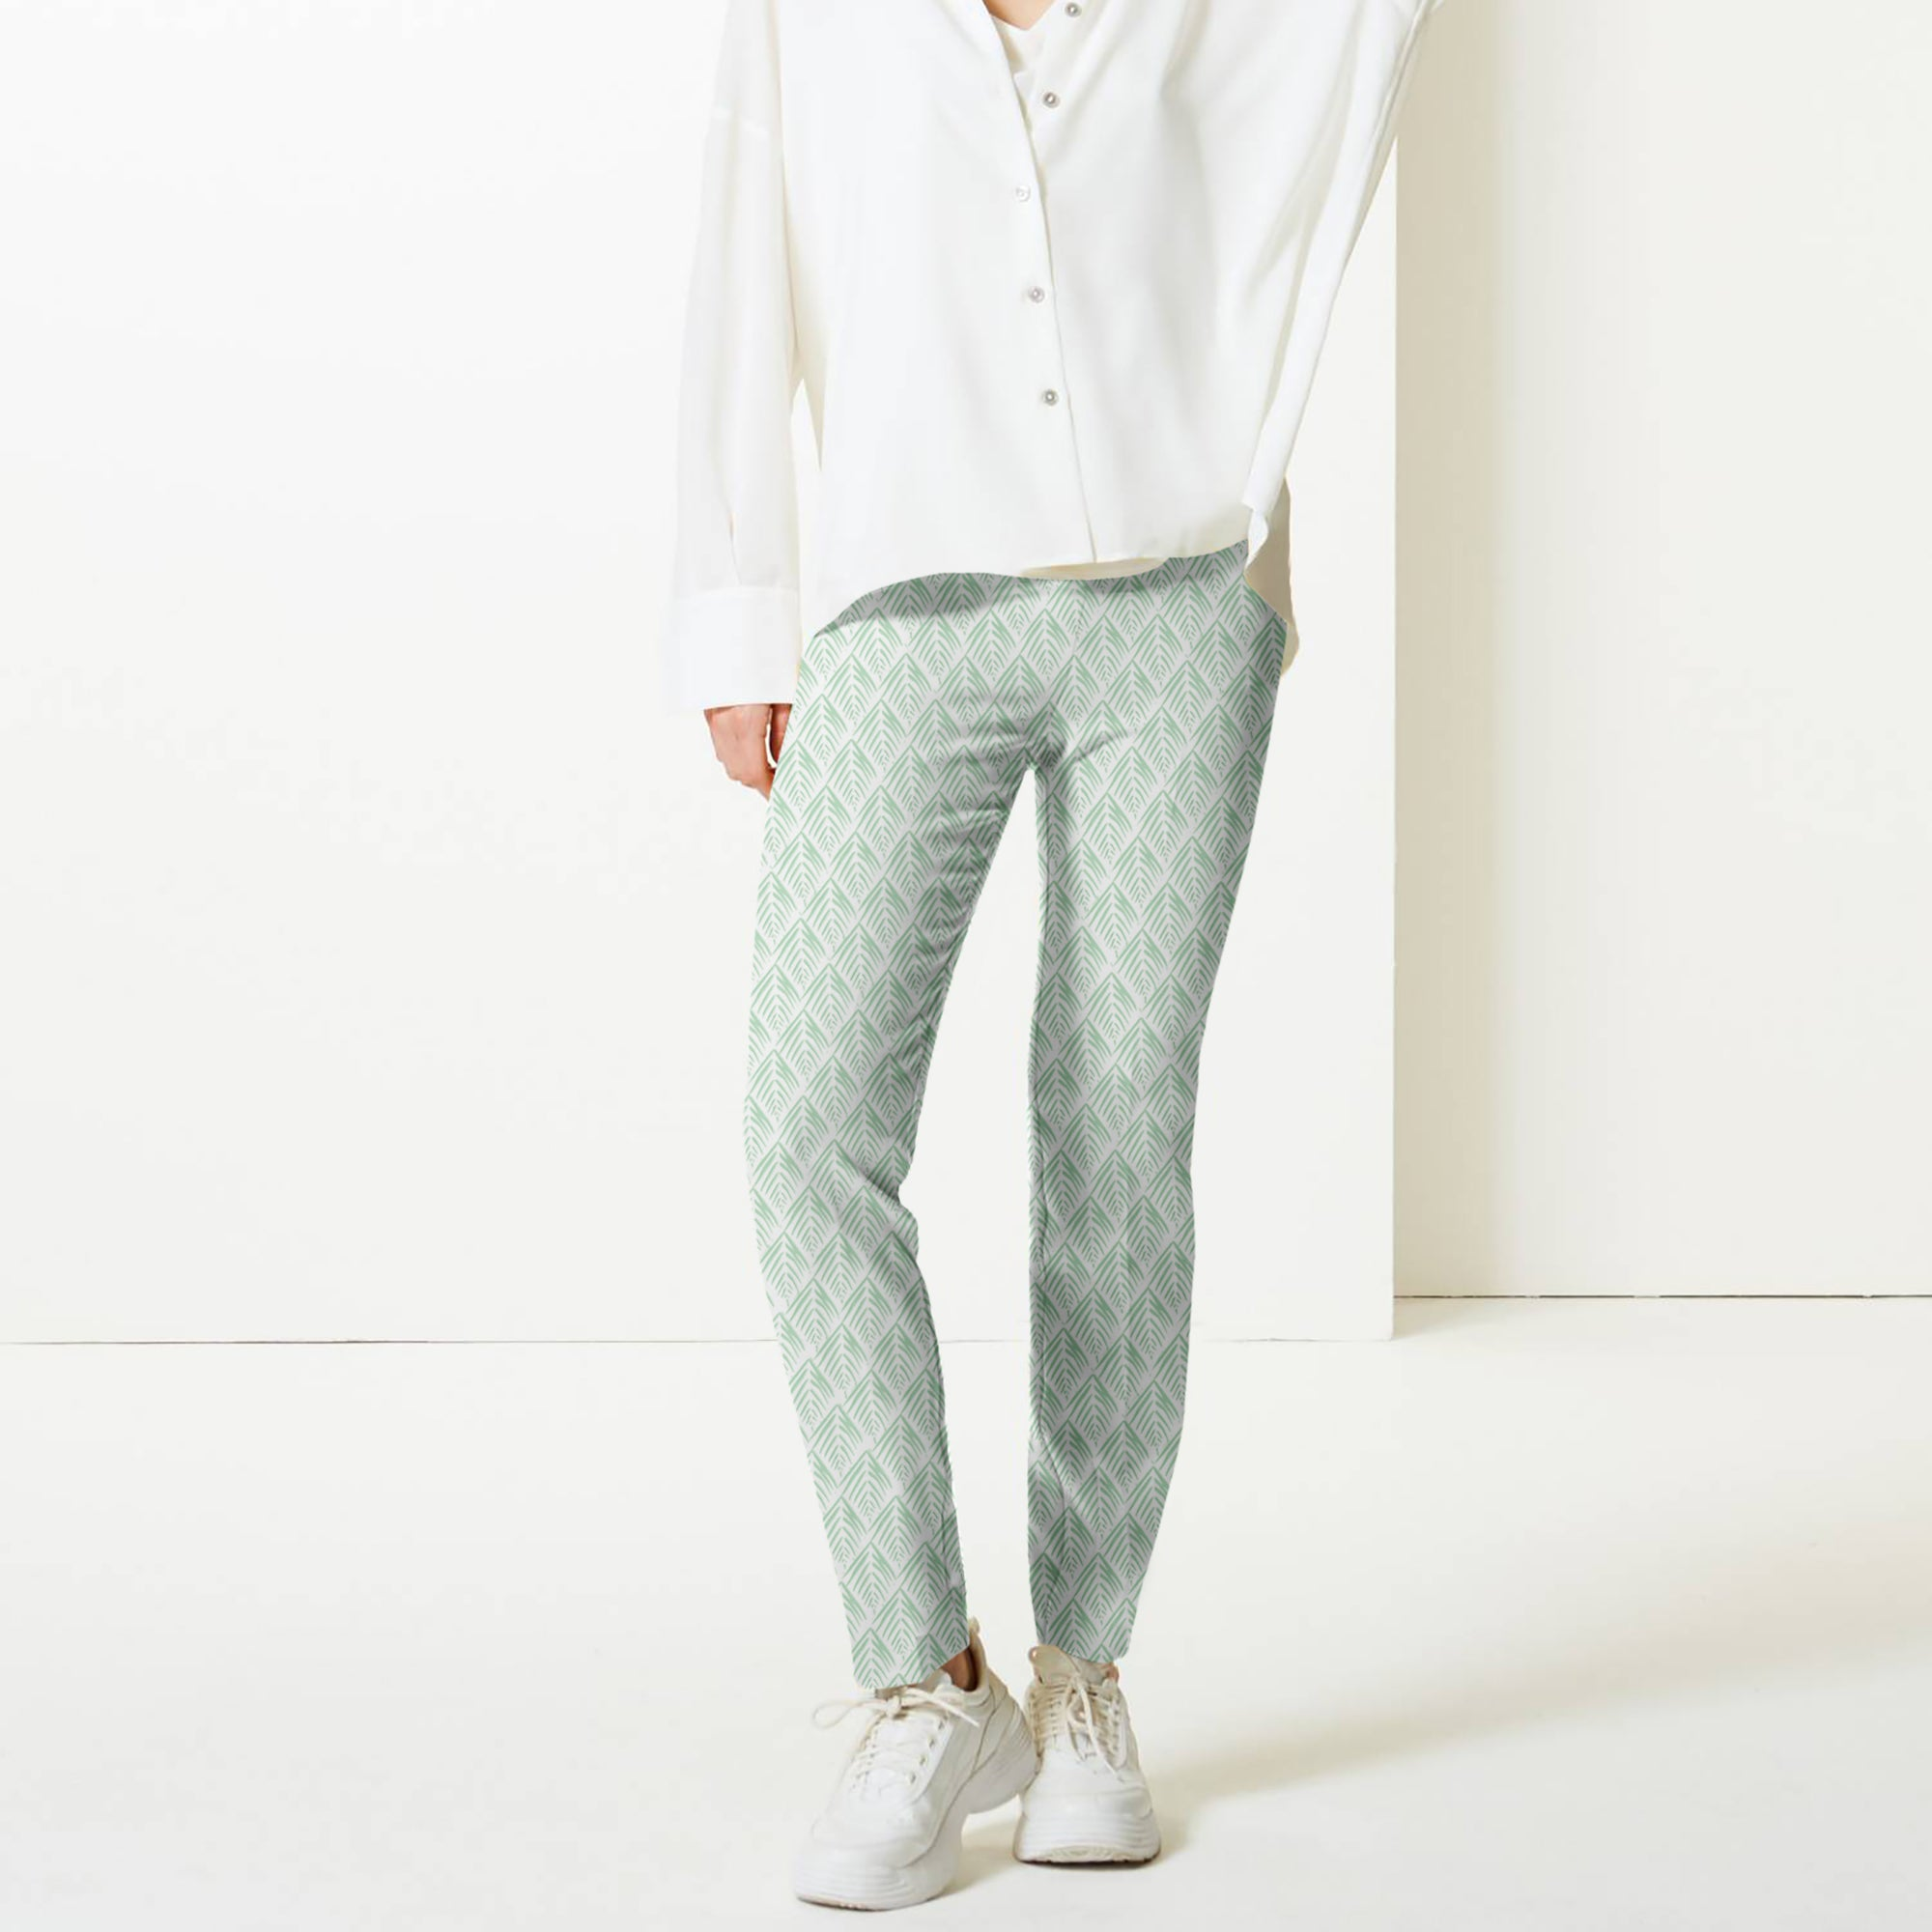 Next Straight Fit Cotton Trouser For Ladies-BE8637